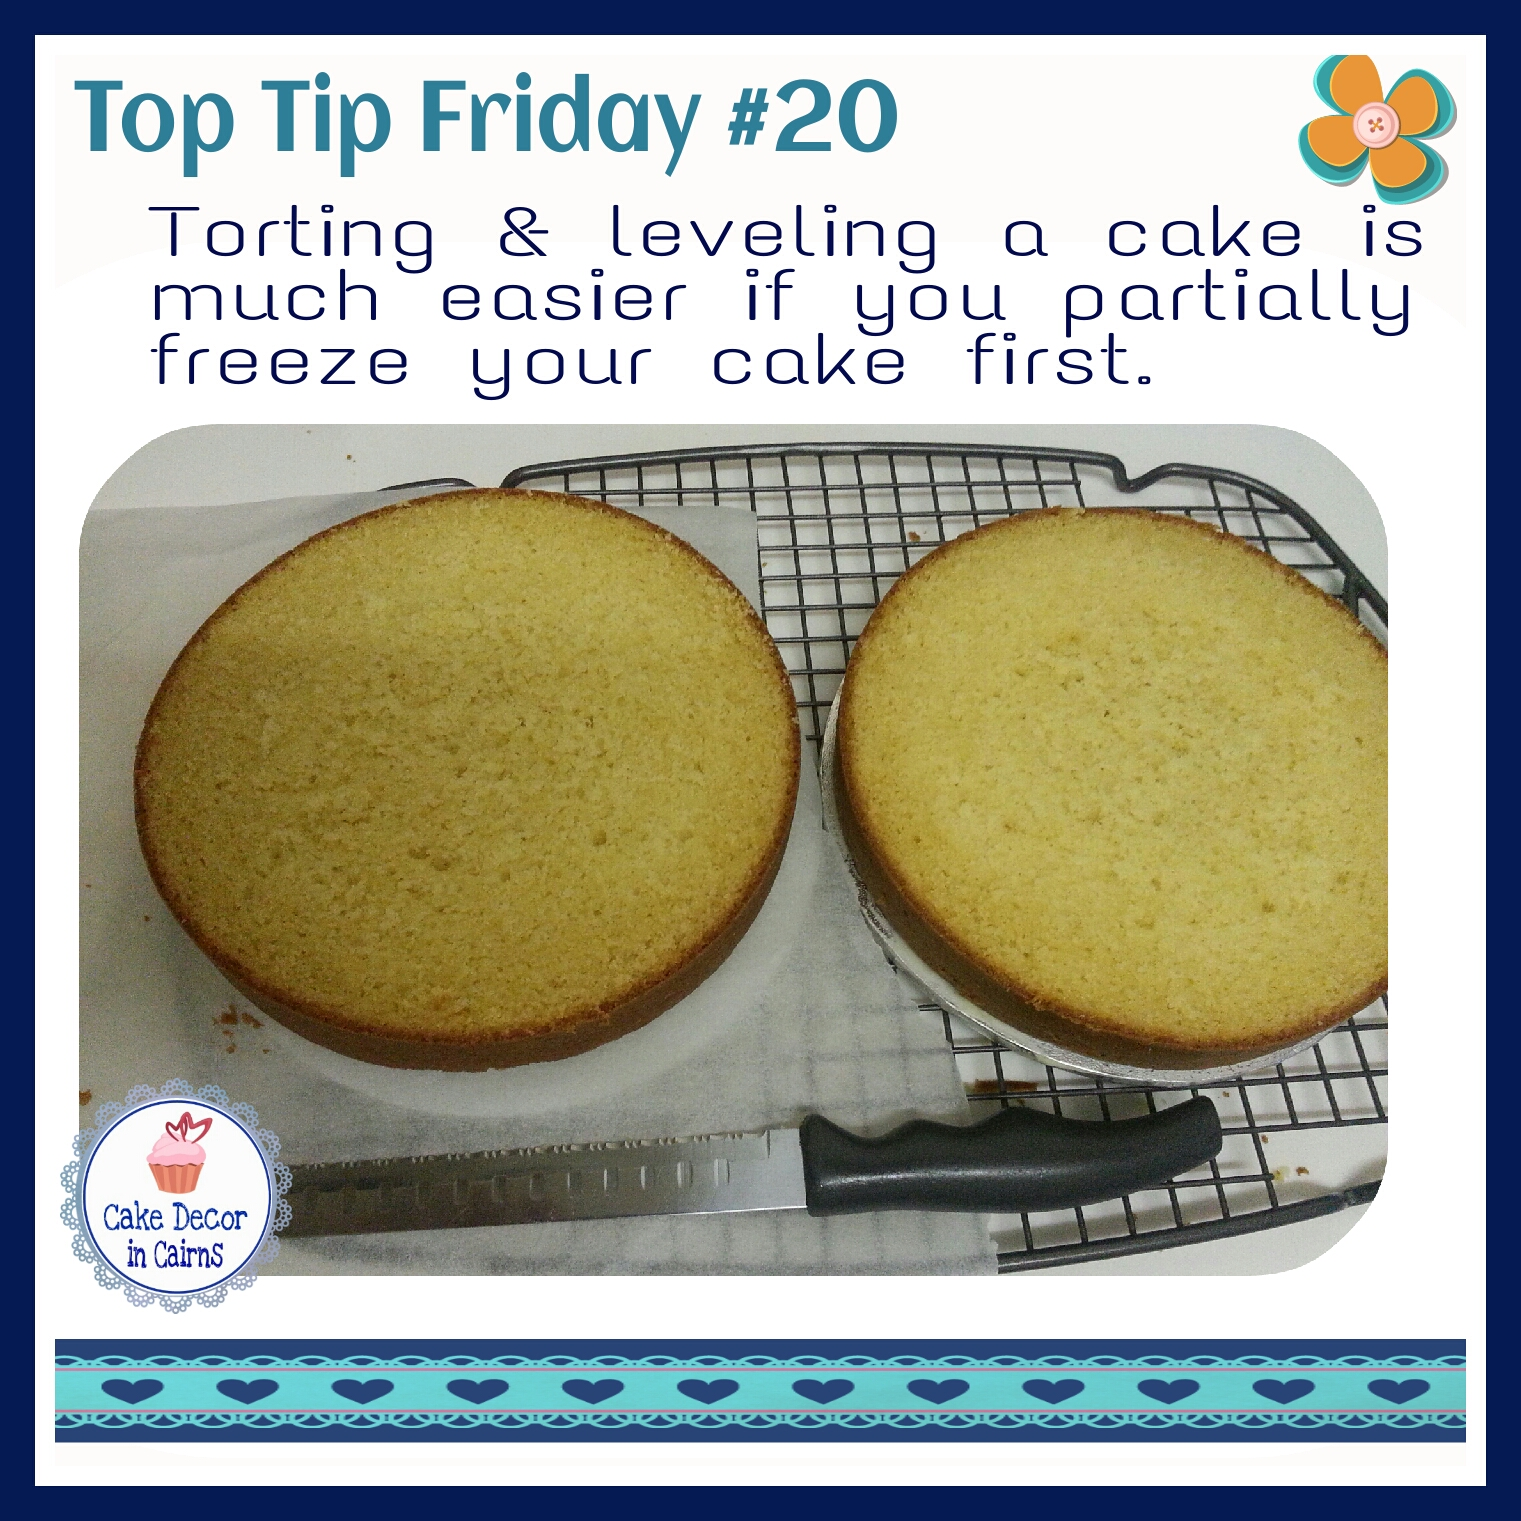 Top Tip Friday Torting and Leveling a cake part 1